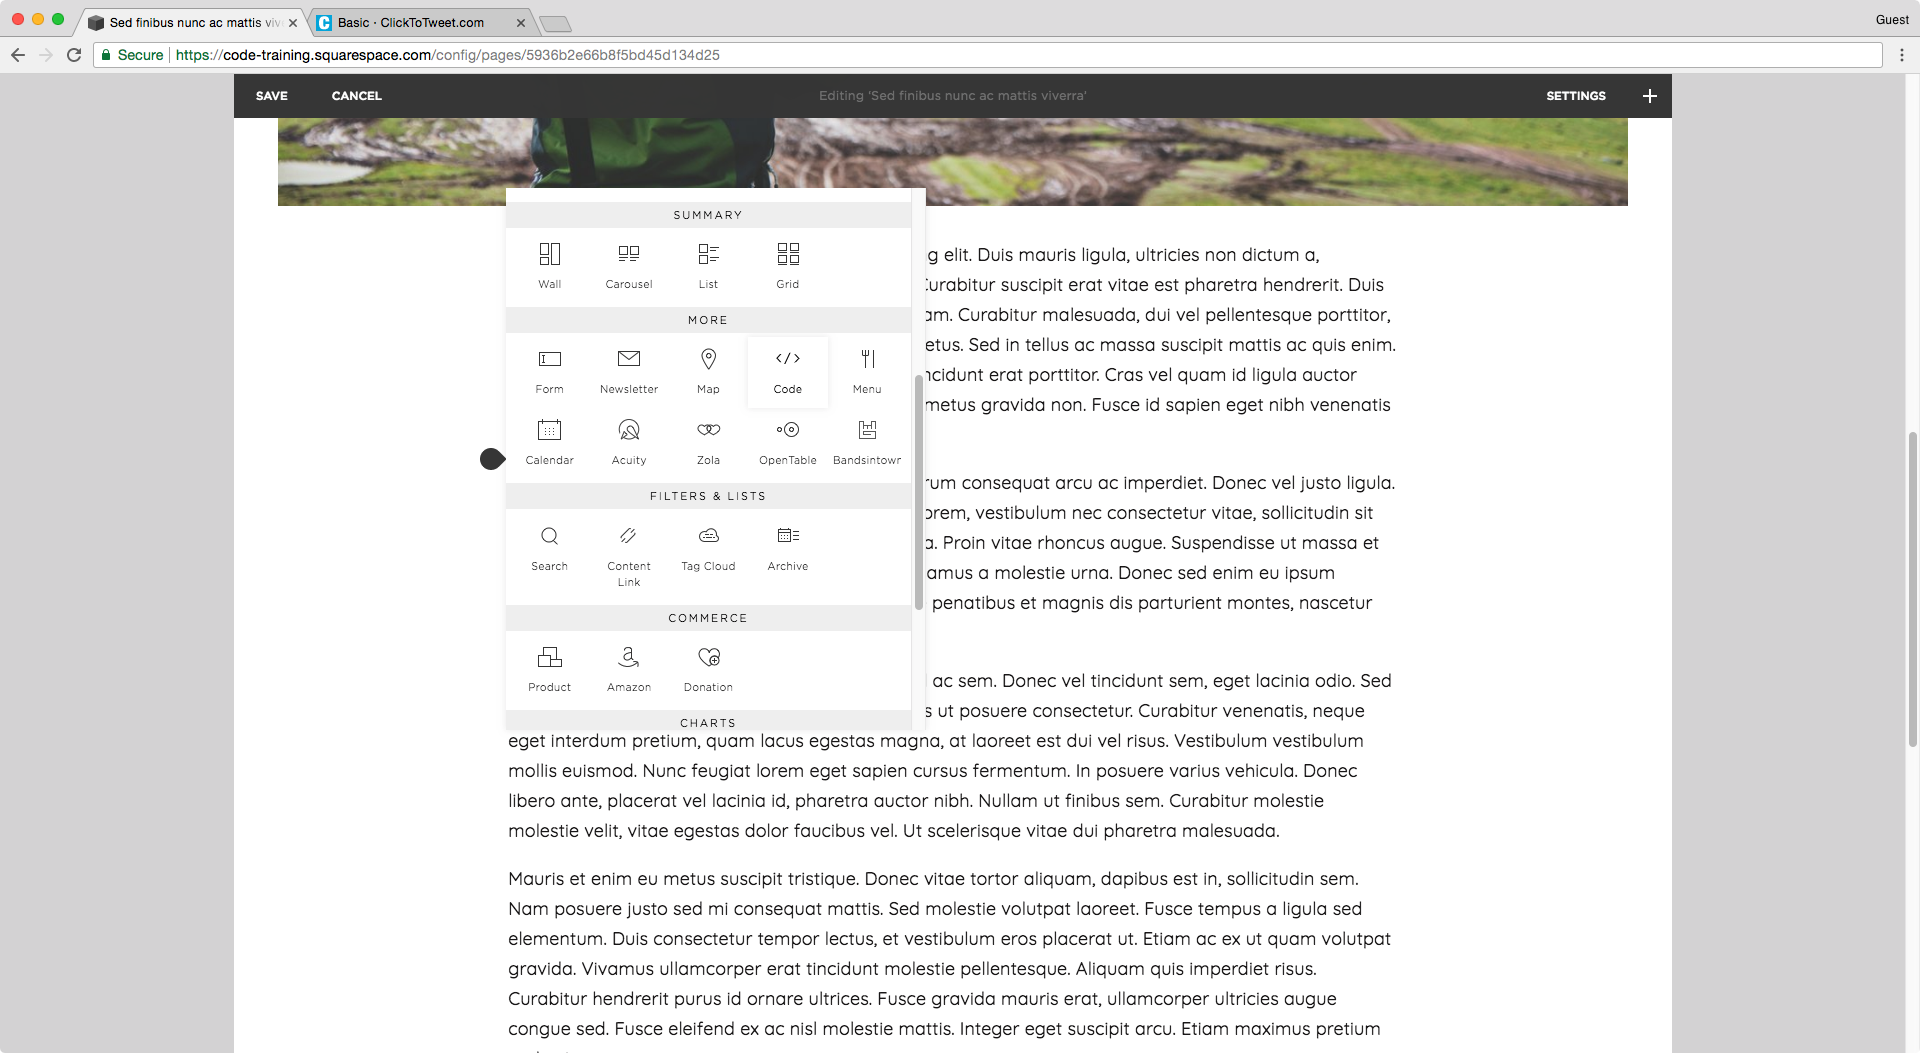 Adding a code block to a blog post in Squarespace